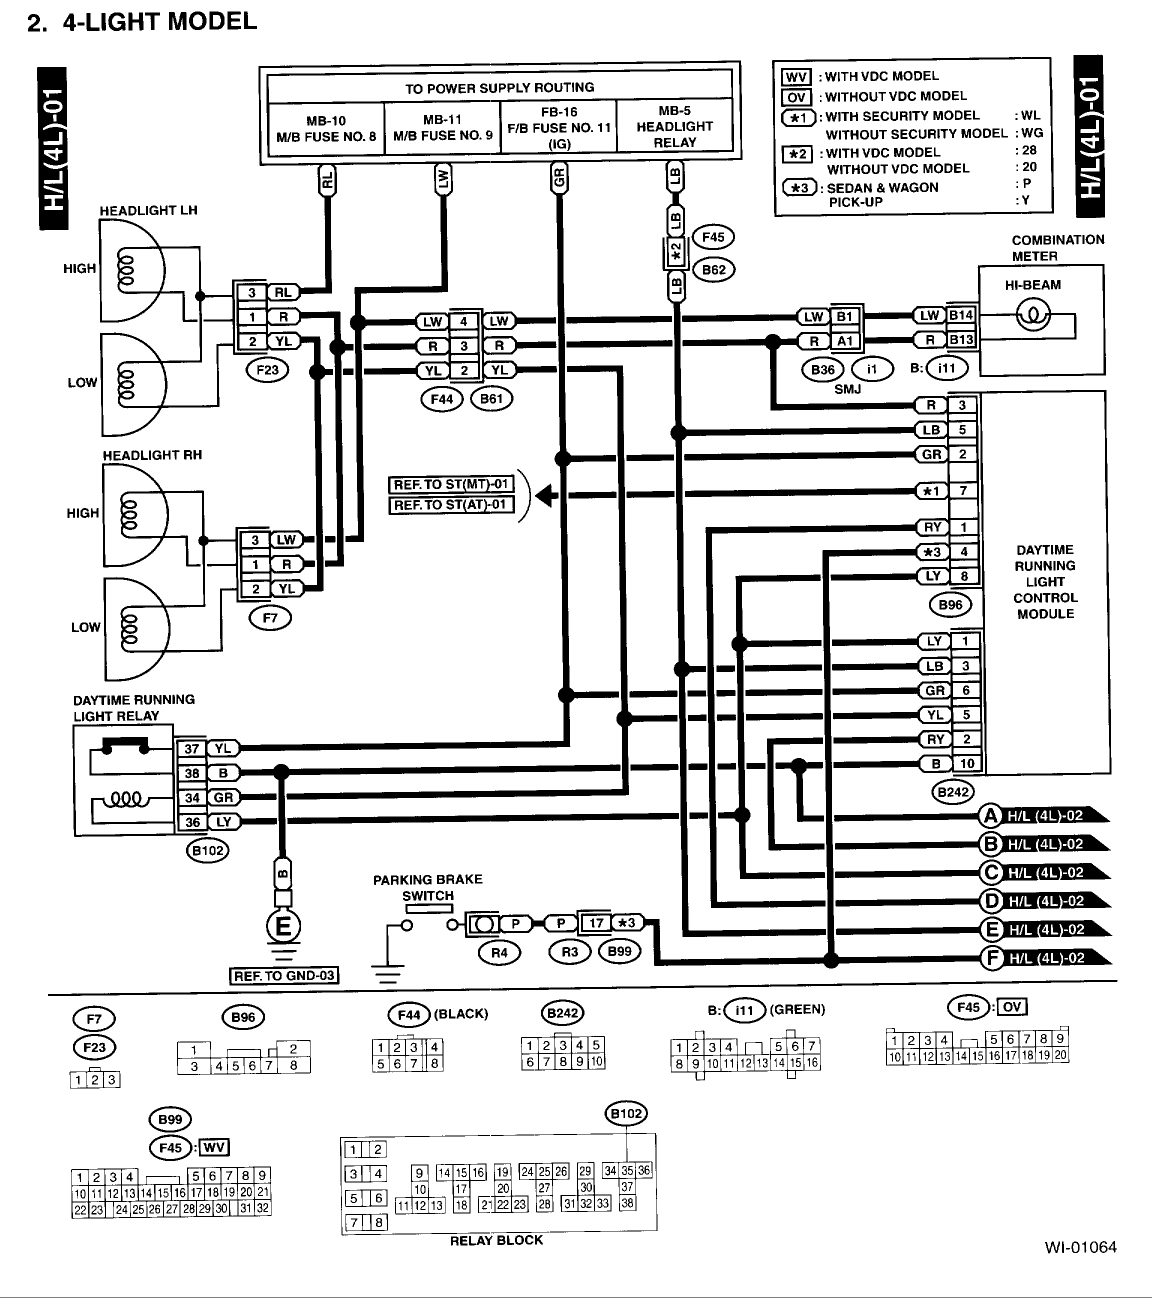 Subaru Legacy Wiring Diagram 2015 Diagram Base Website Diagram 2015 -  DIAGRAMOFHEART.AISC-NET.ITaisc